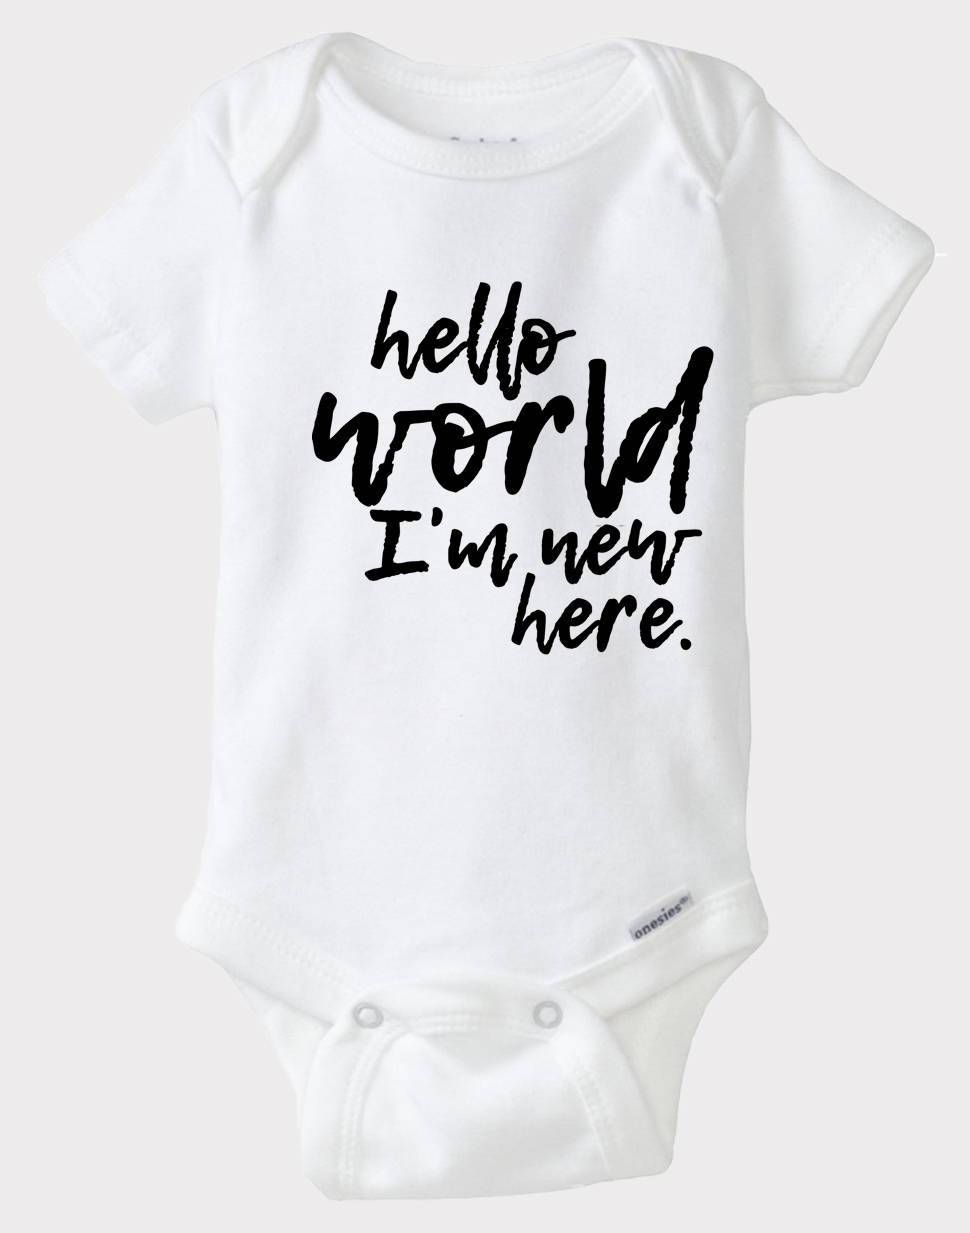 000bacd9b Hello World I m New Here Baby Onesies®